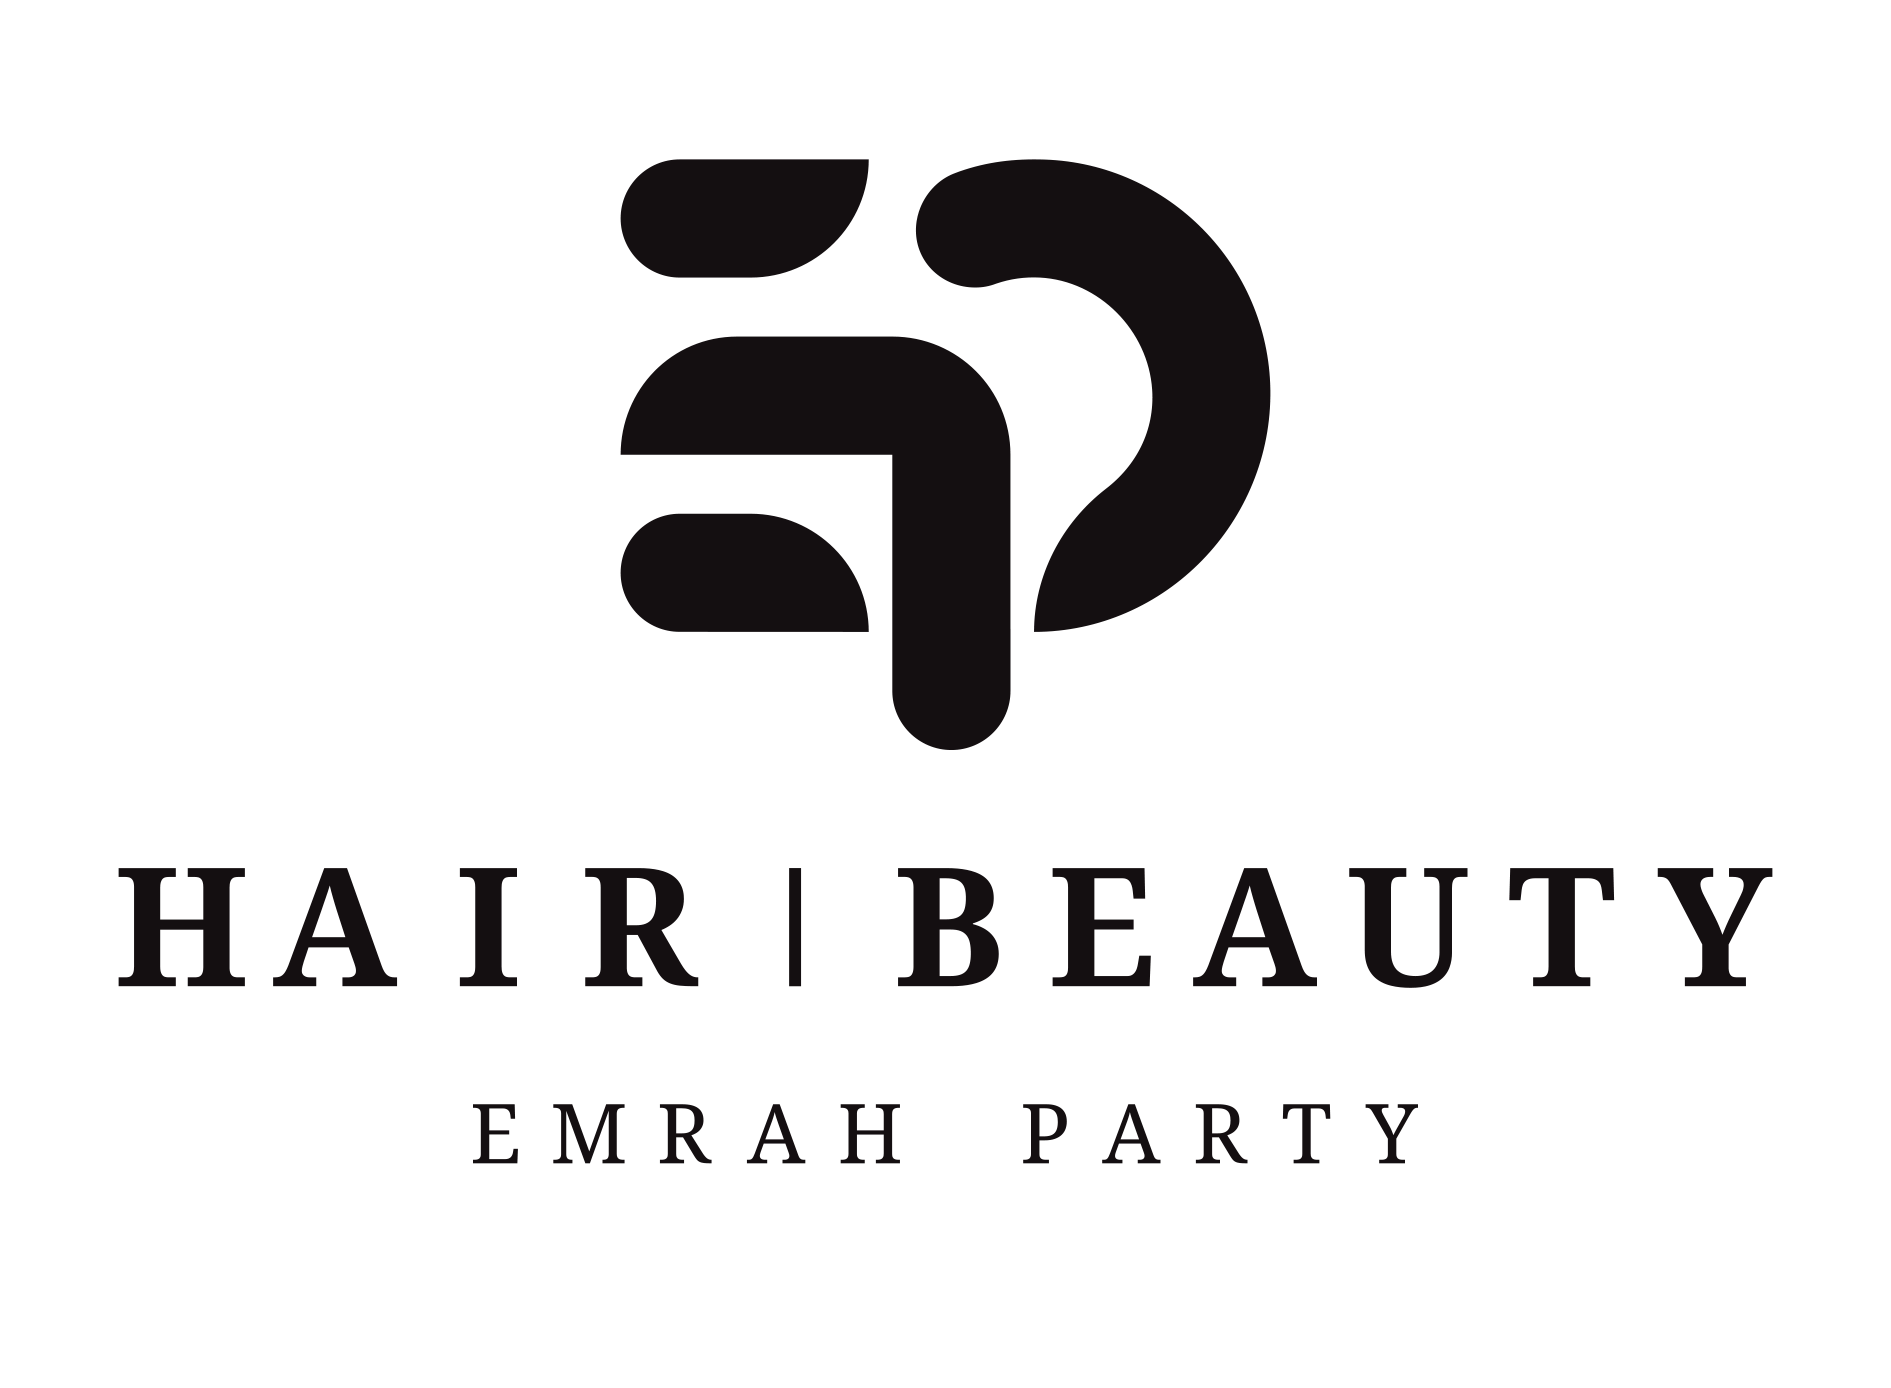 Emrah Party Hair Beauty Wellness